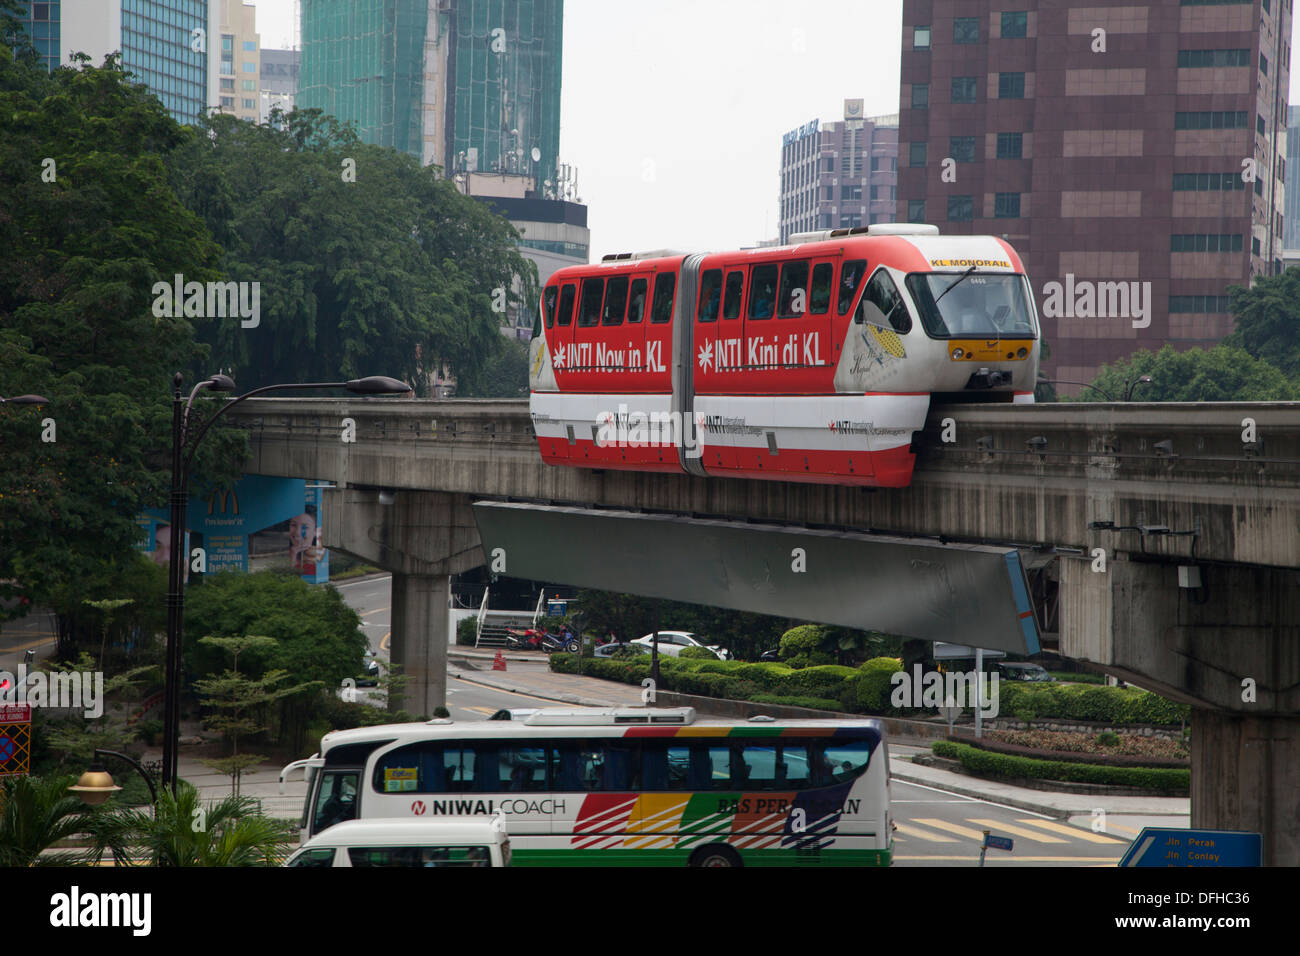 transportation in kuala lumpur Getting around within kuala lumpur is easy with numerous methods of transport available travel by taxi, bus or light rail transit tips of walking through kuala lumpur on foot.